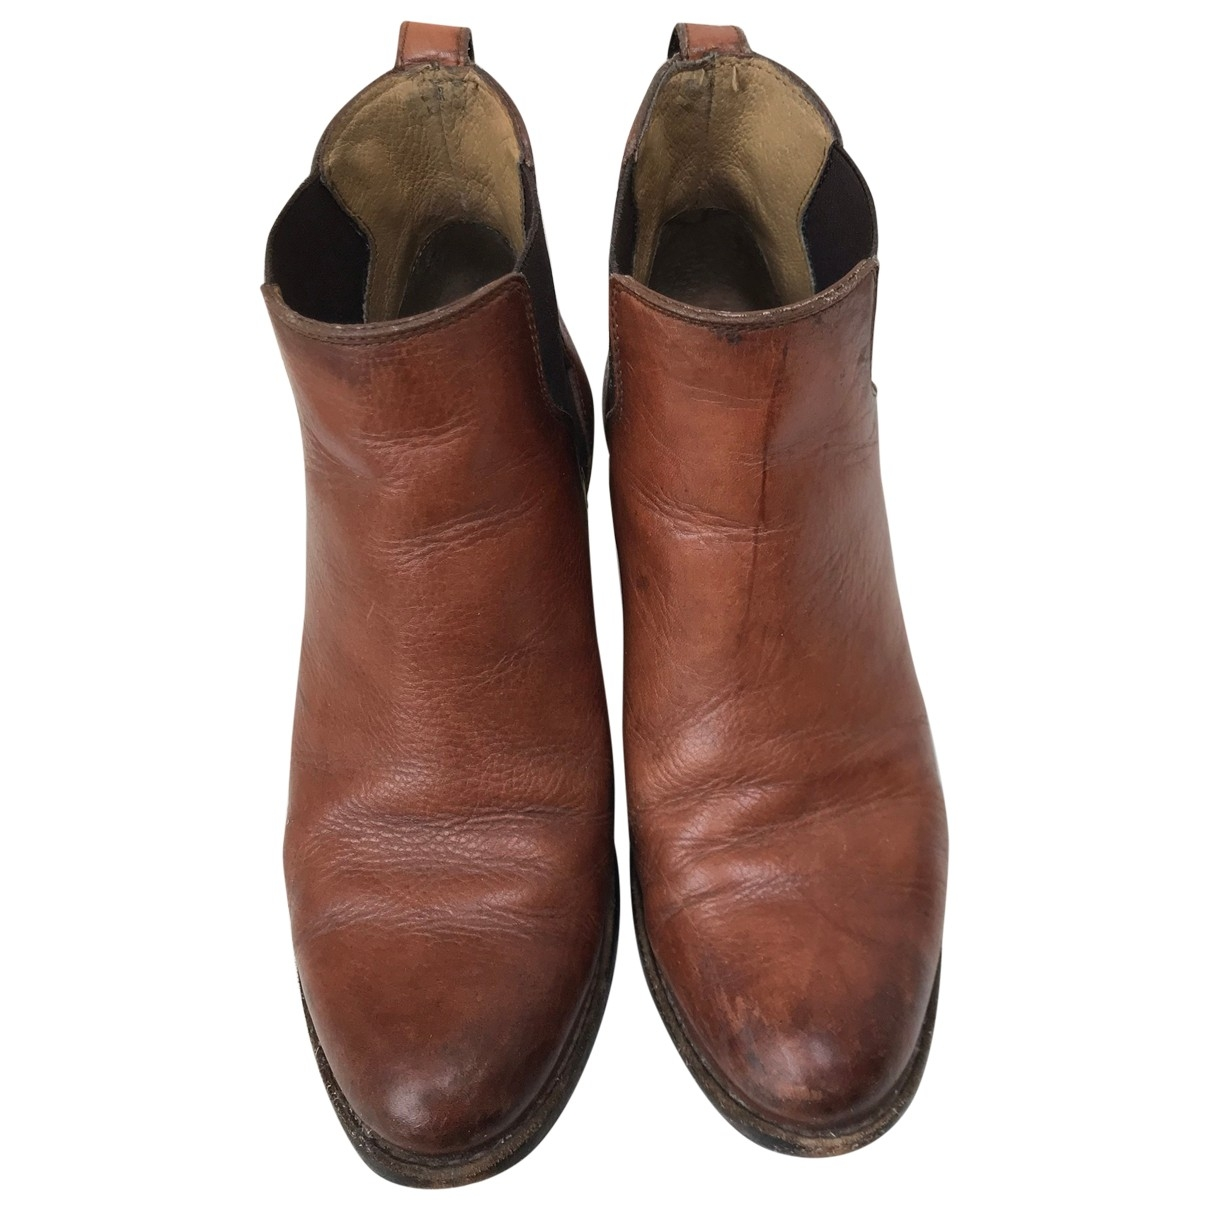 Frye \N Brown Leather Ankle boots for Women 7 US